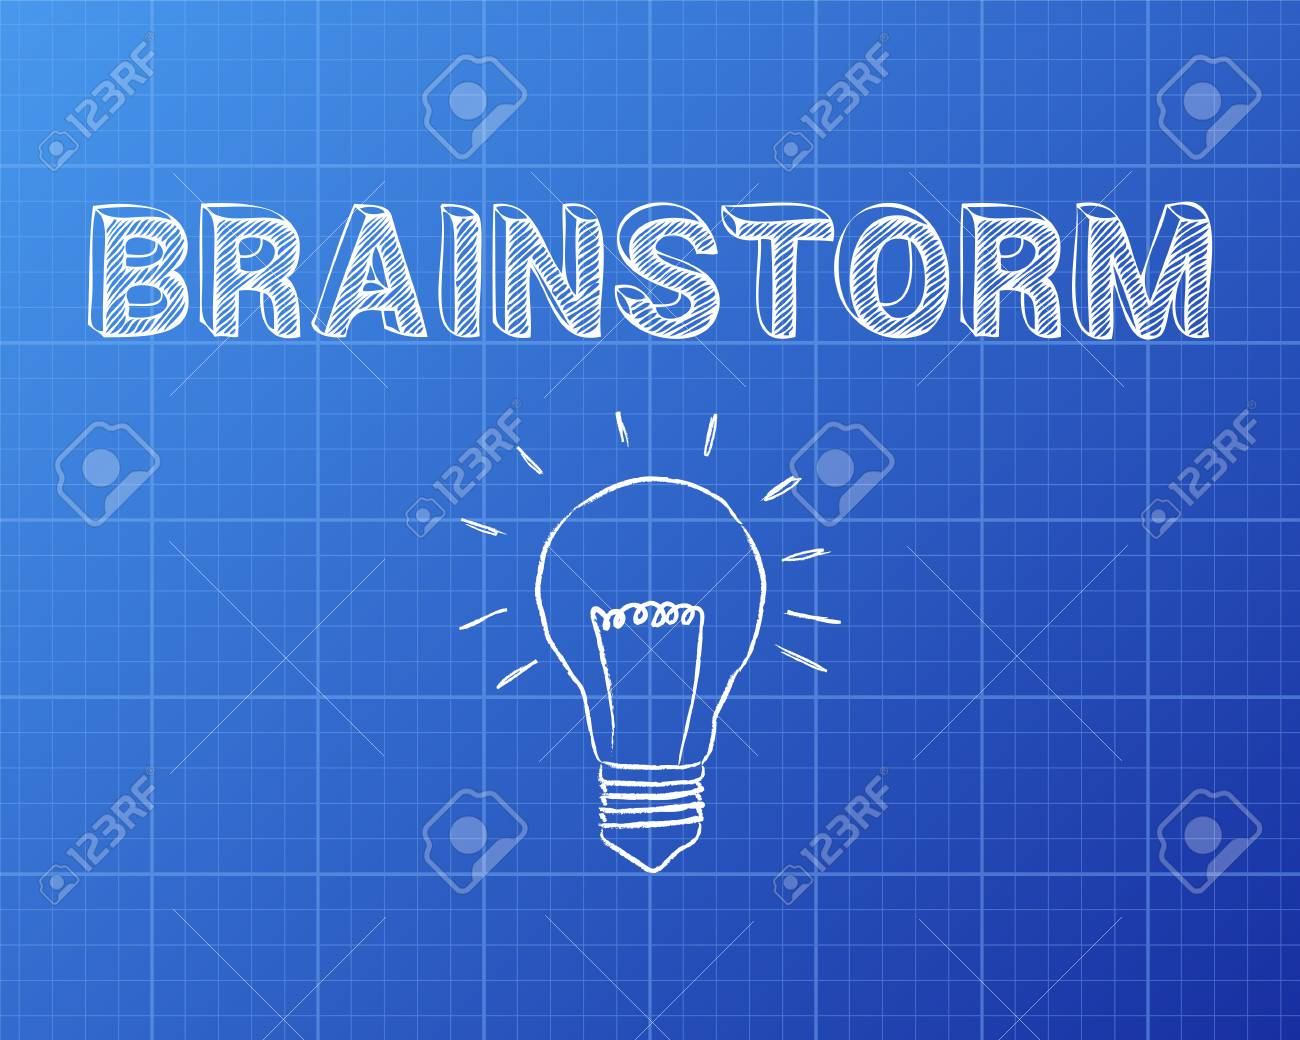 Hand drawn brainstorm sign and lightbulb on blueprint background hand drawn brainstorm sign and lightbulb on blueprint background foto de archivo 74632252 malvernweather Gallery